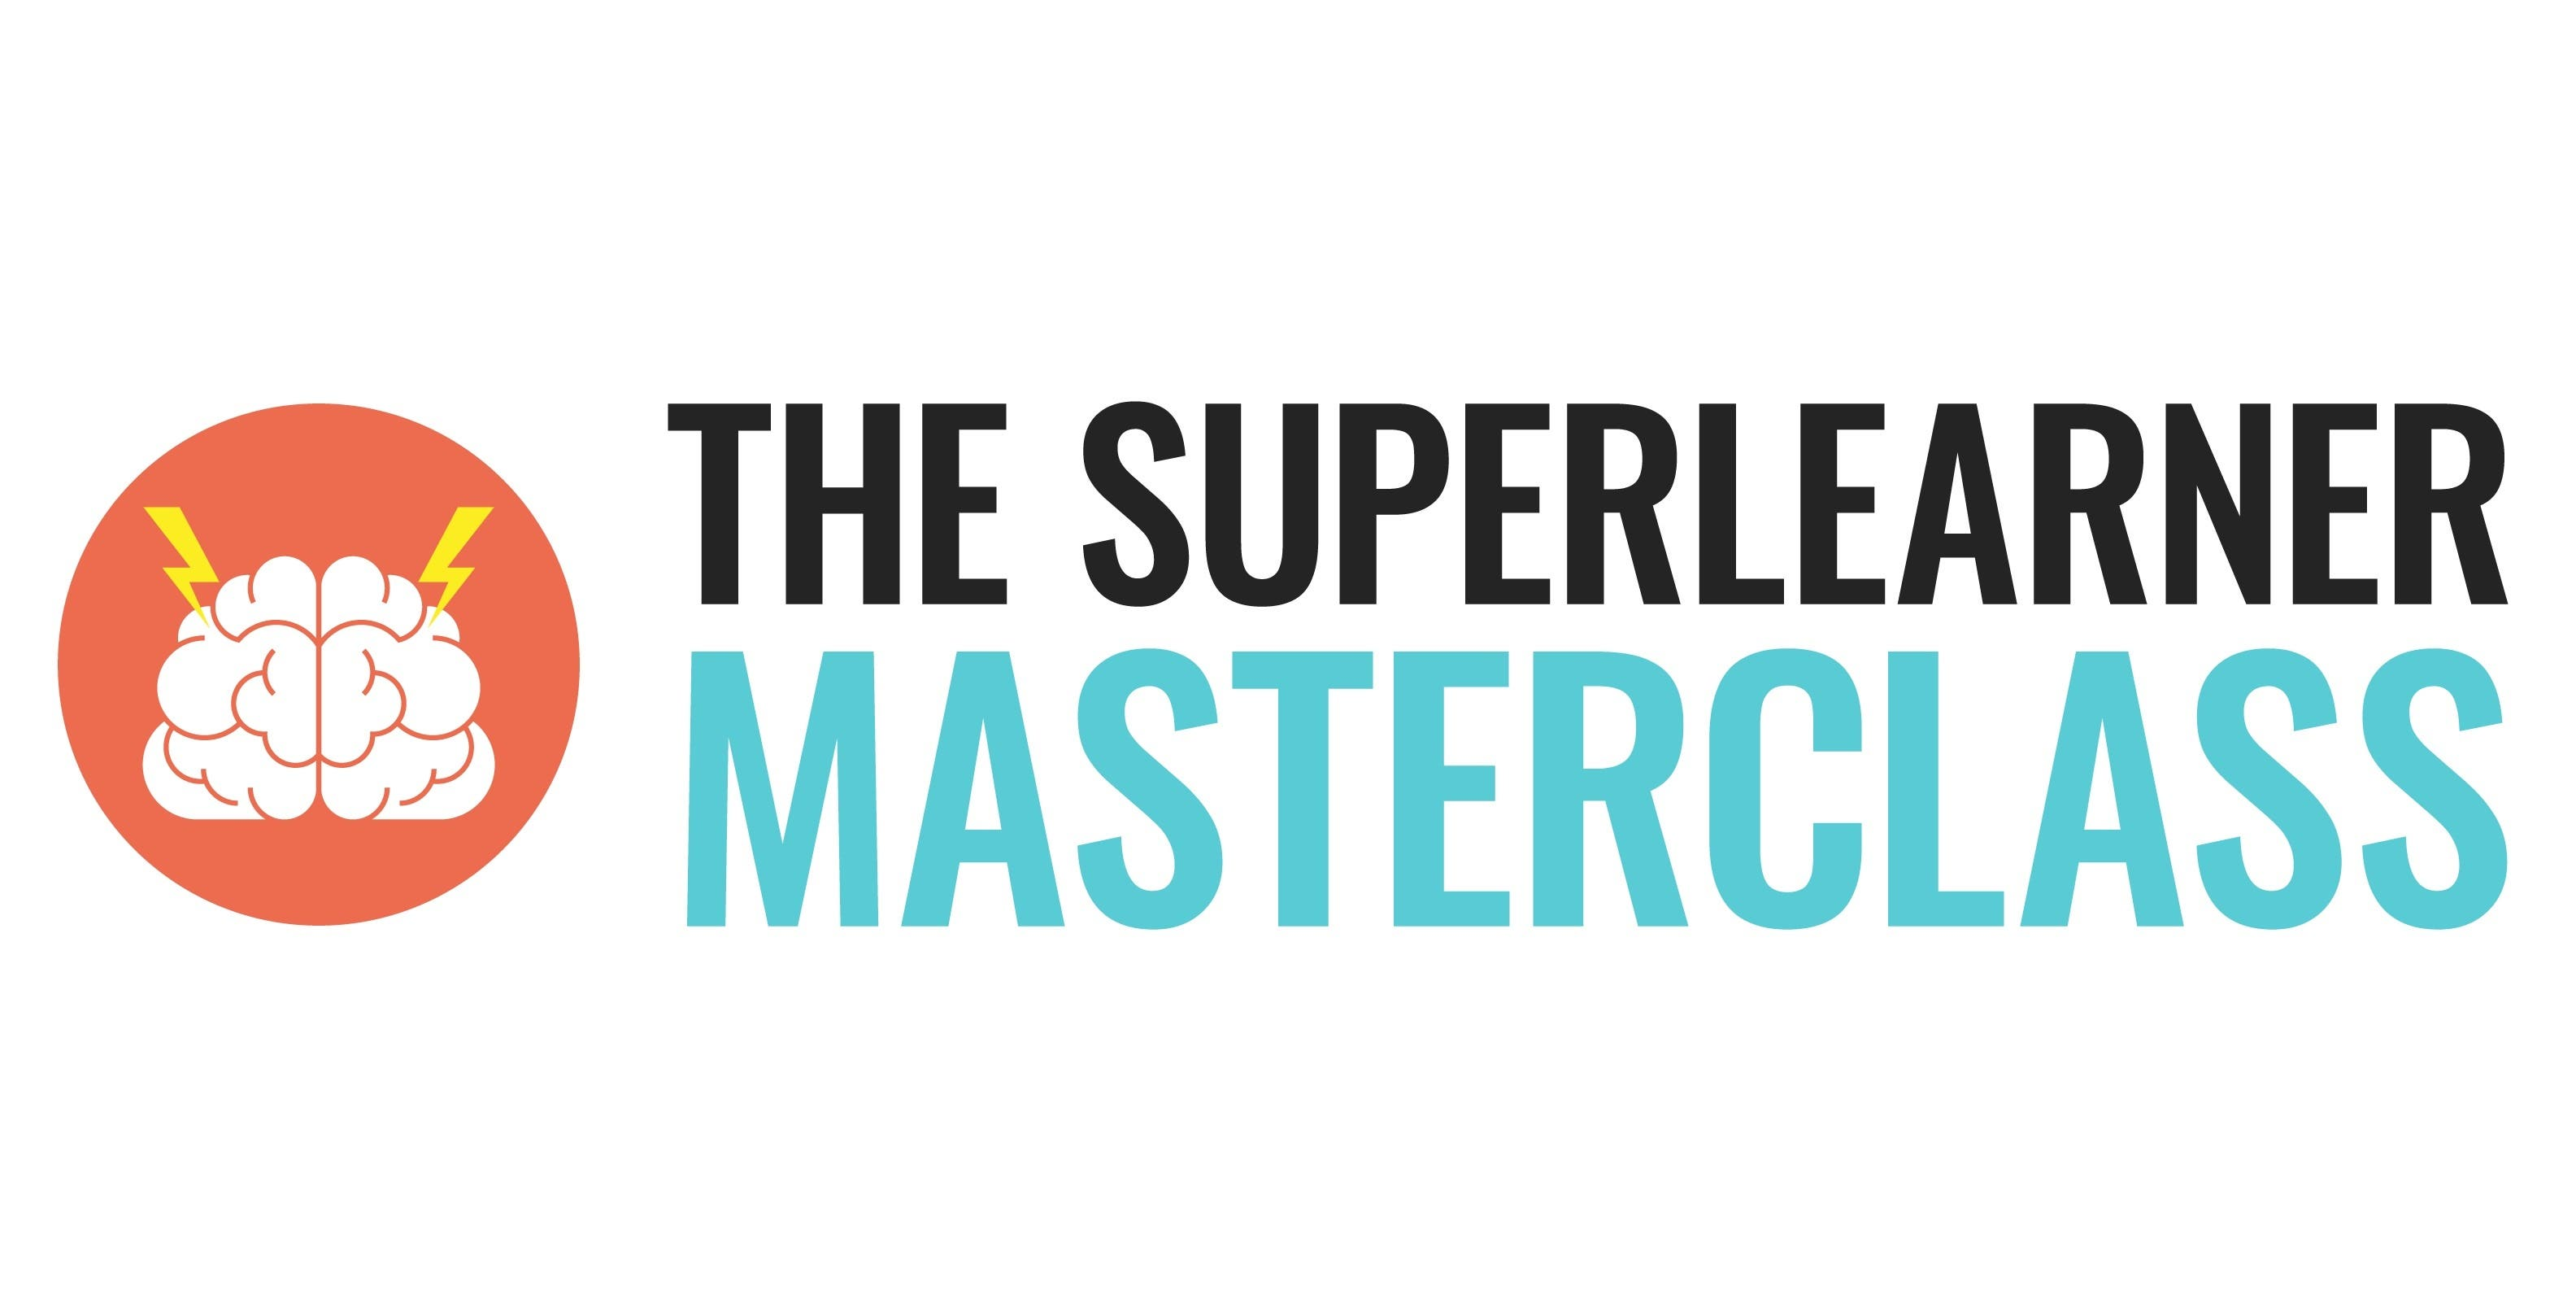 Become a SuperLearner - The Master Class